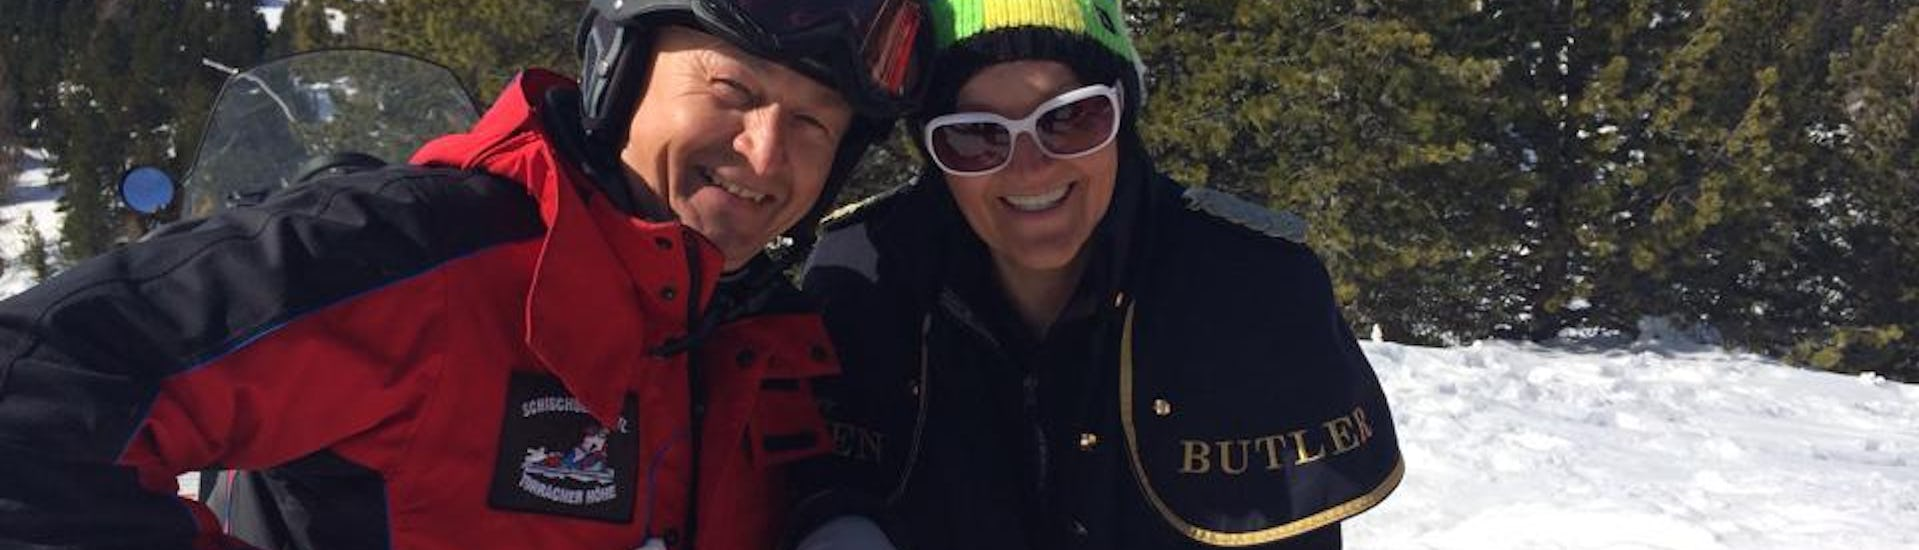 Skiinstructor and student smiling to the camera